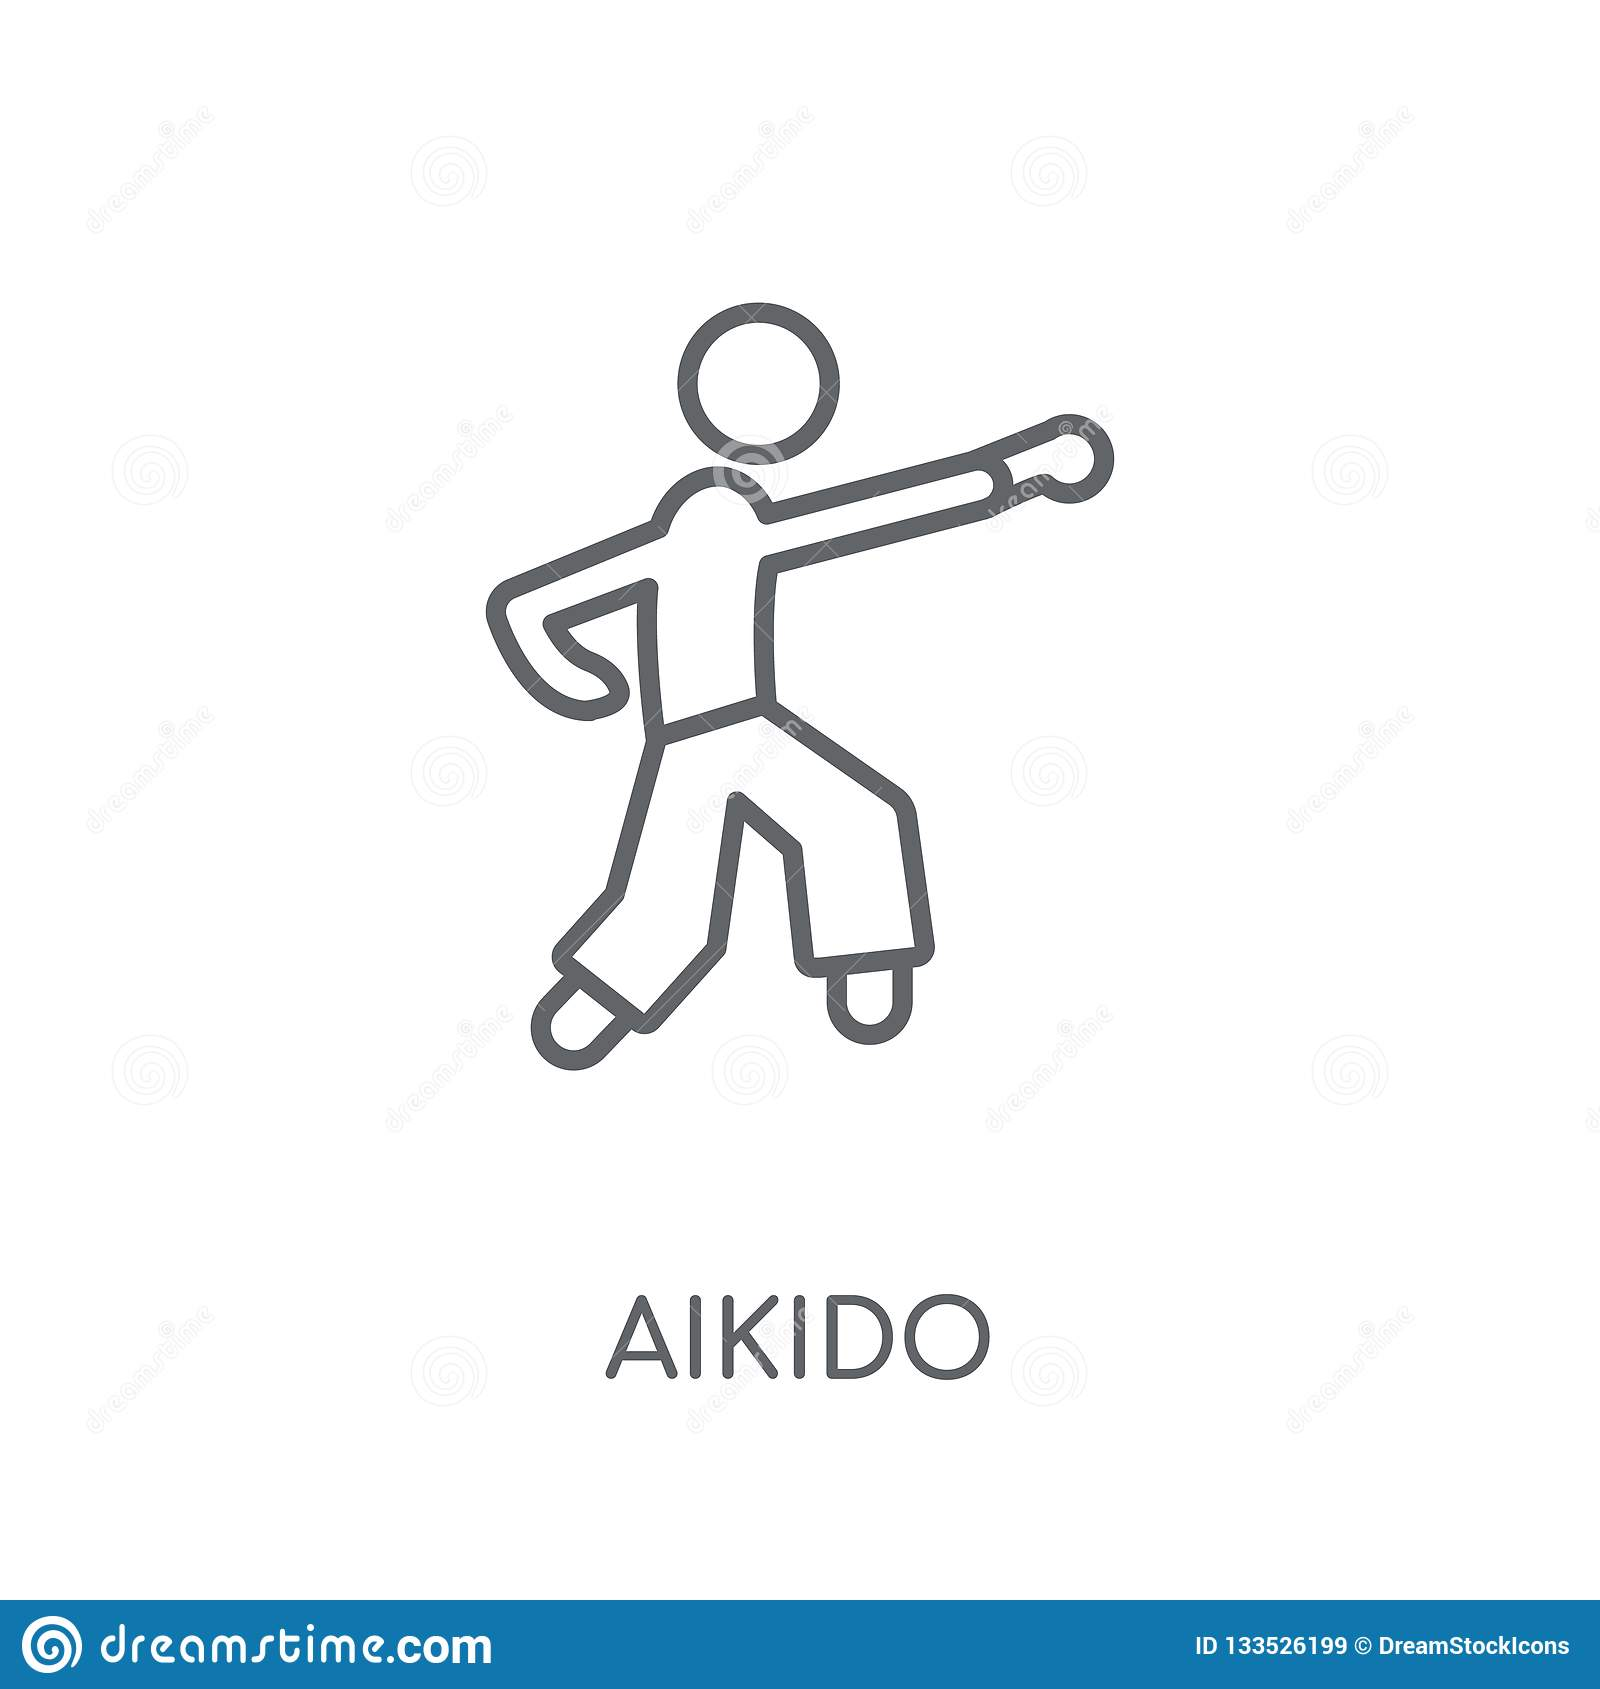 aikido linear icon. Modern outline aikido logo concept on white